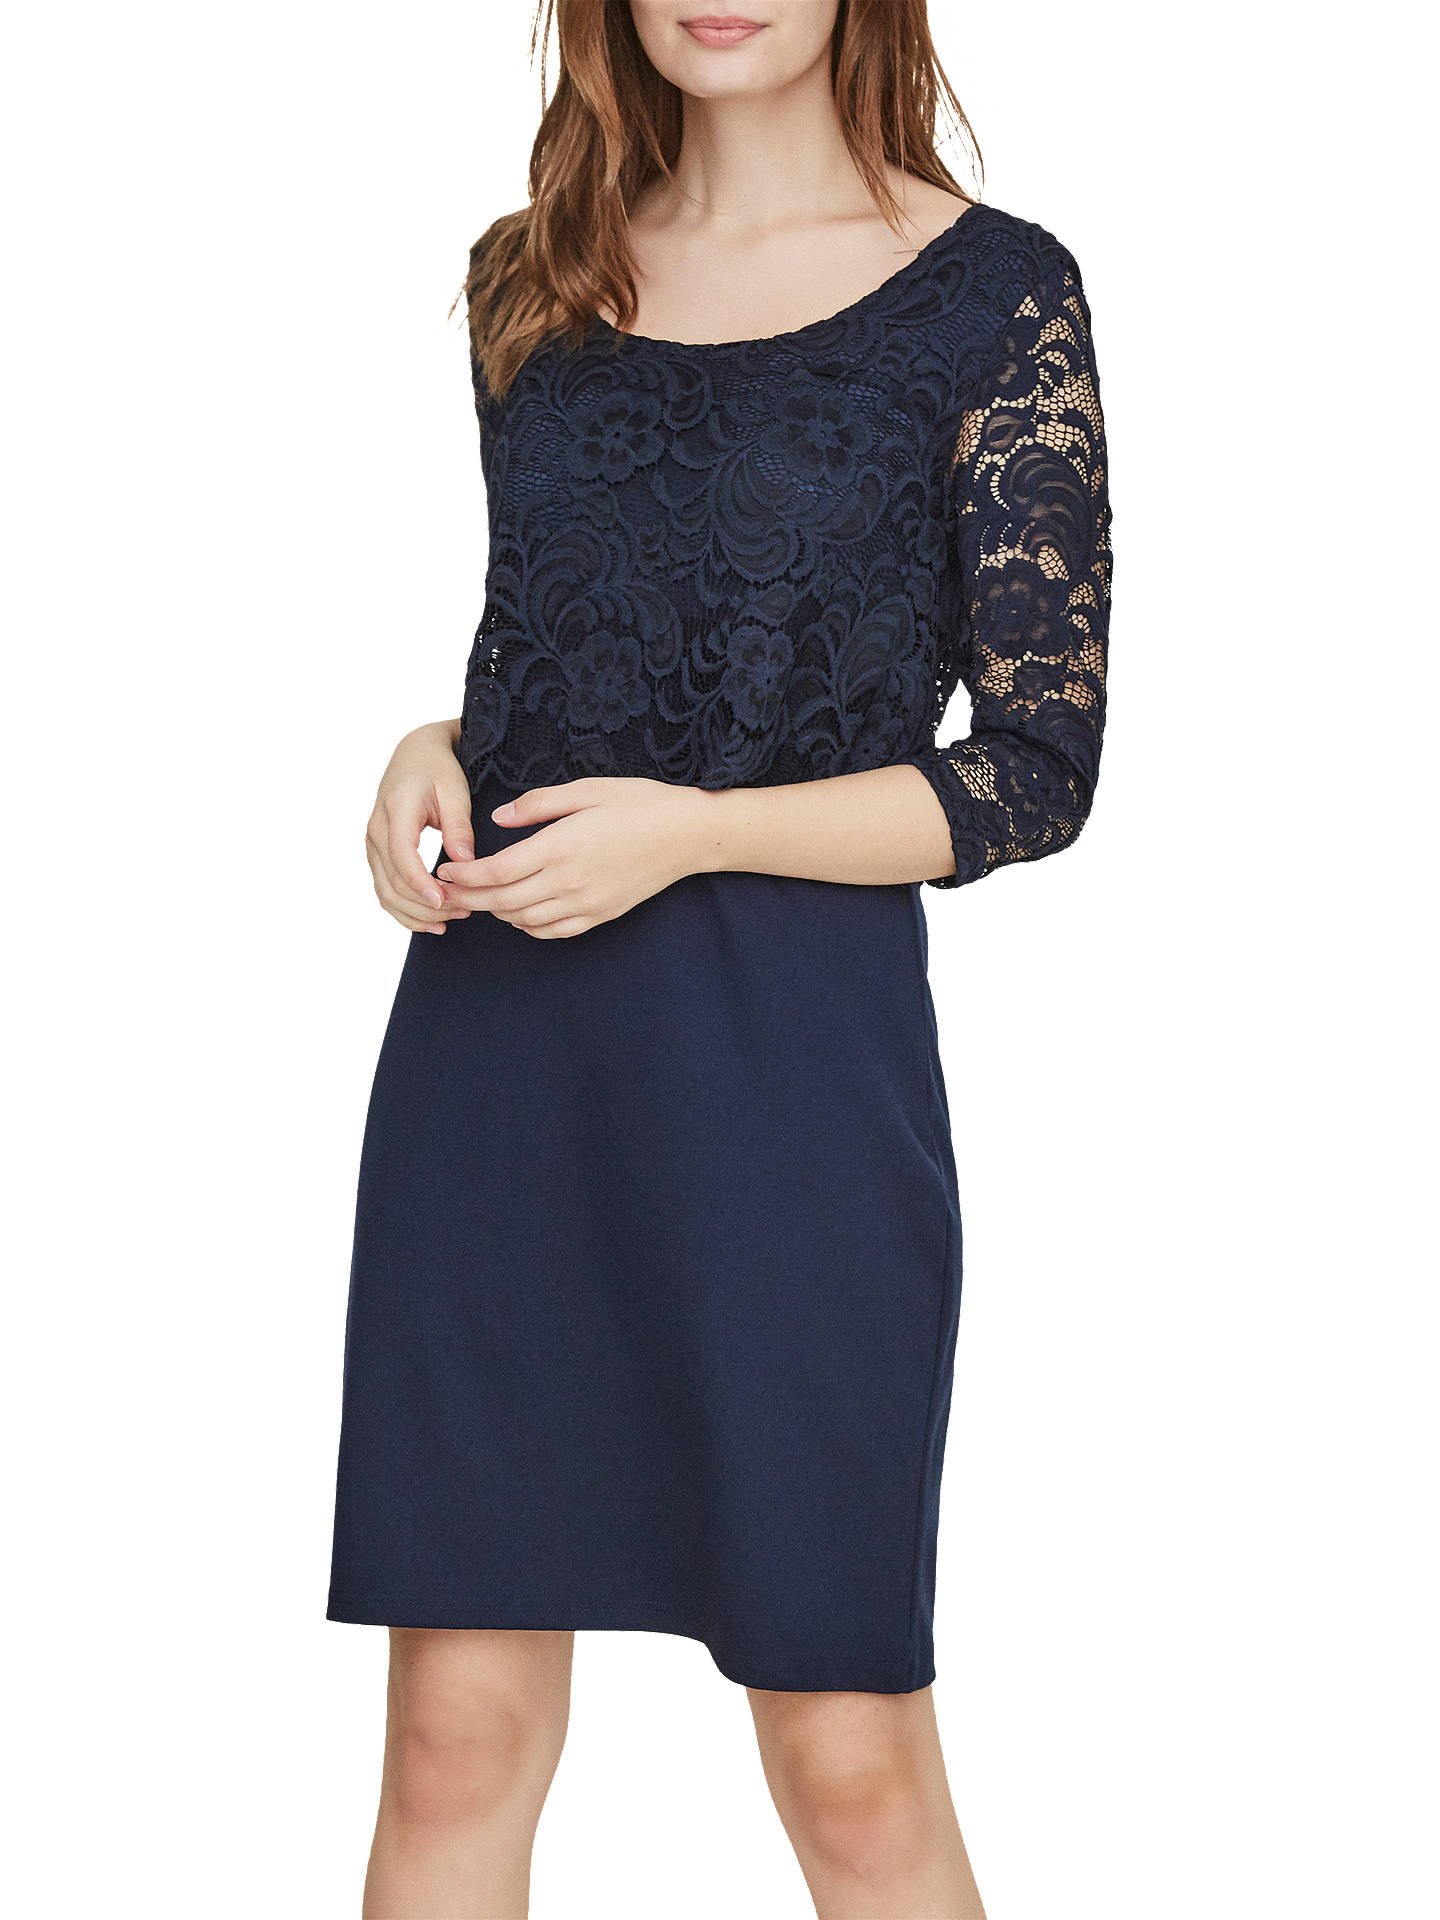 15322d91c558e Buy Mamalicious June Lace Overlay Maternity Nursing Dress, Navy, S Online  at johnlewis.